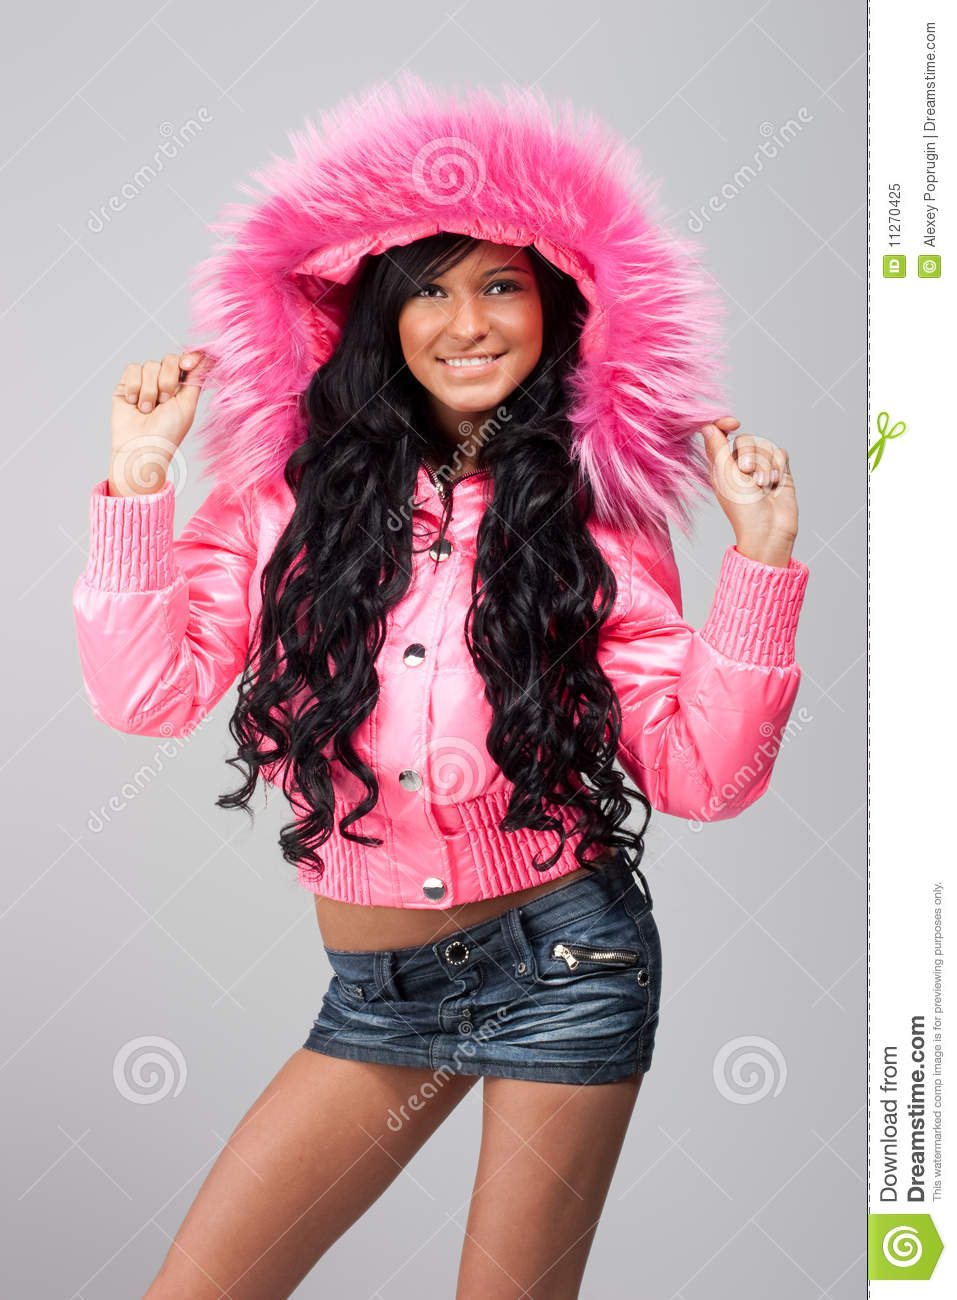 Hot girl in pink